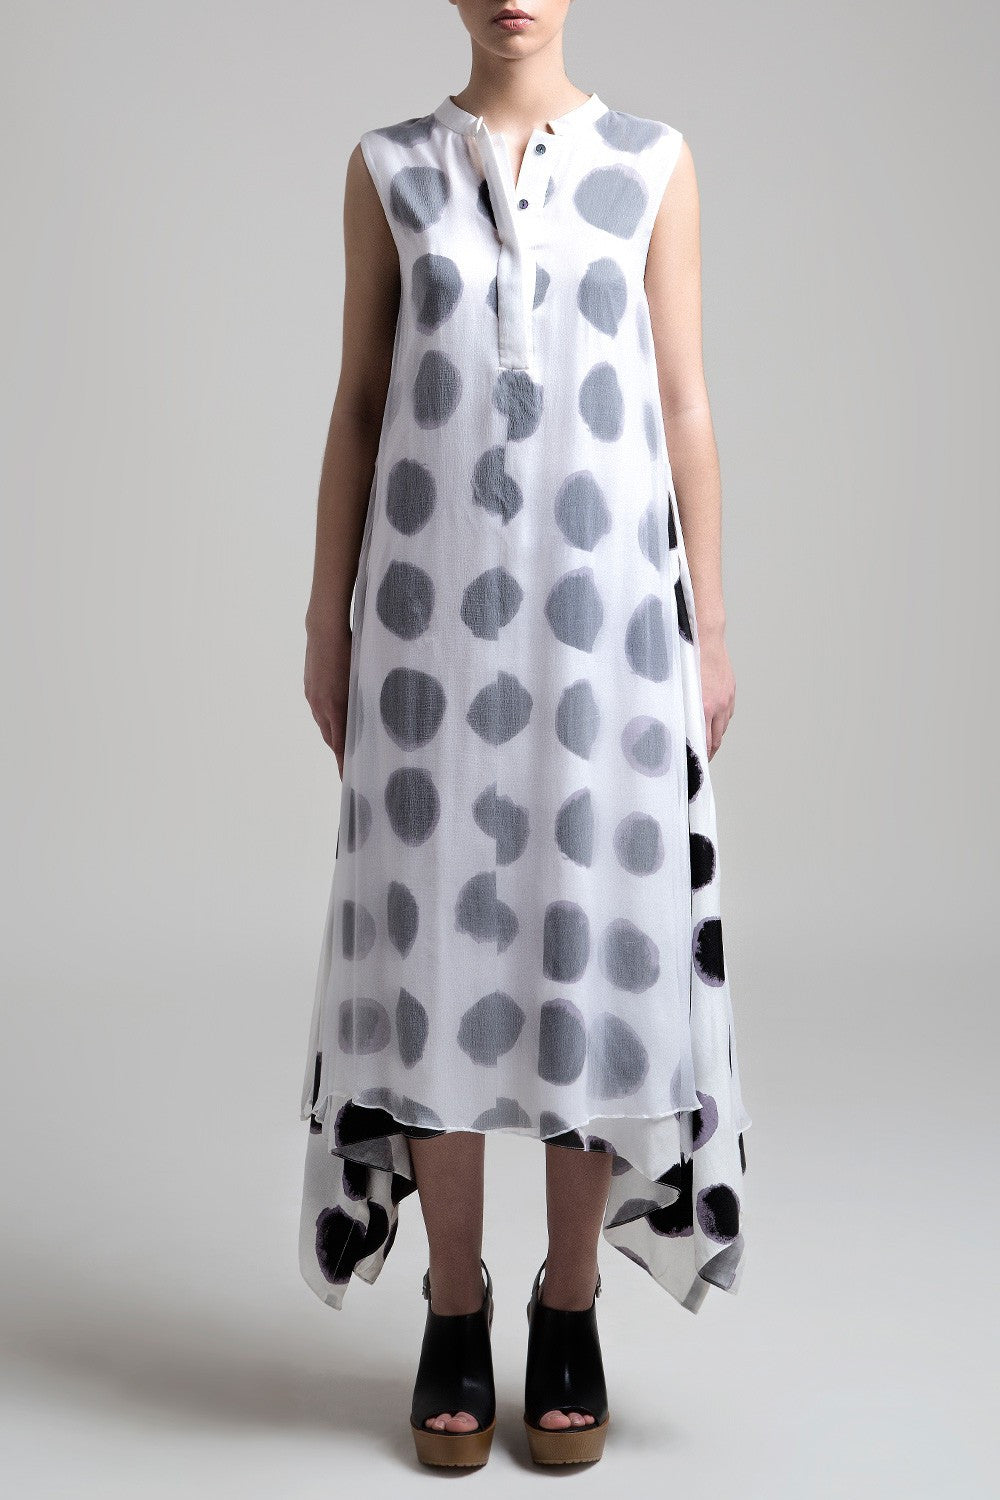 White Color Polka Dot Tunic Dress From Bench